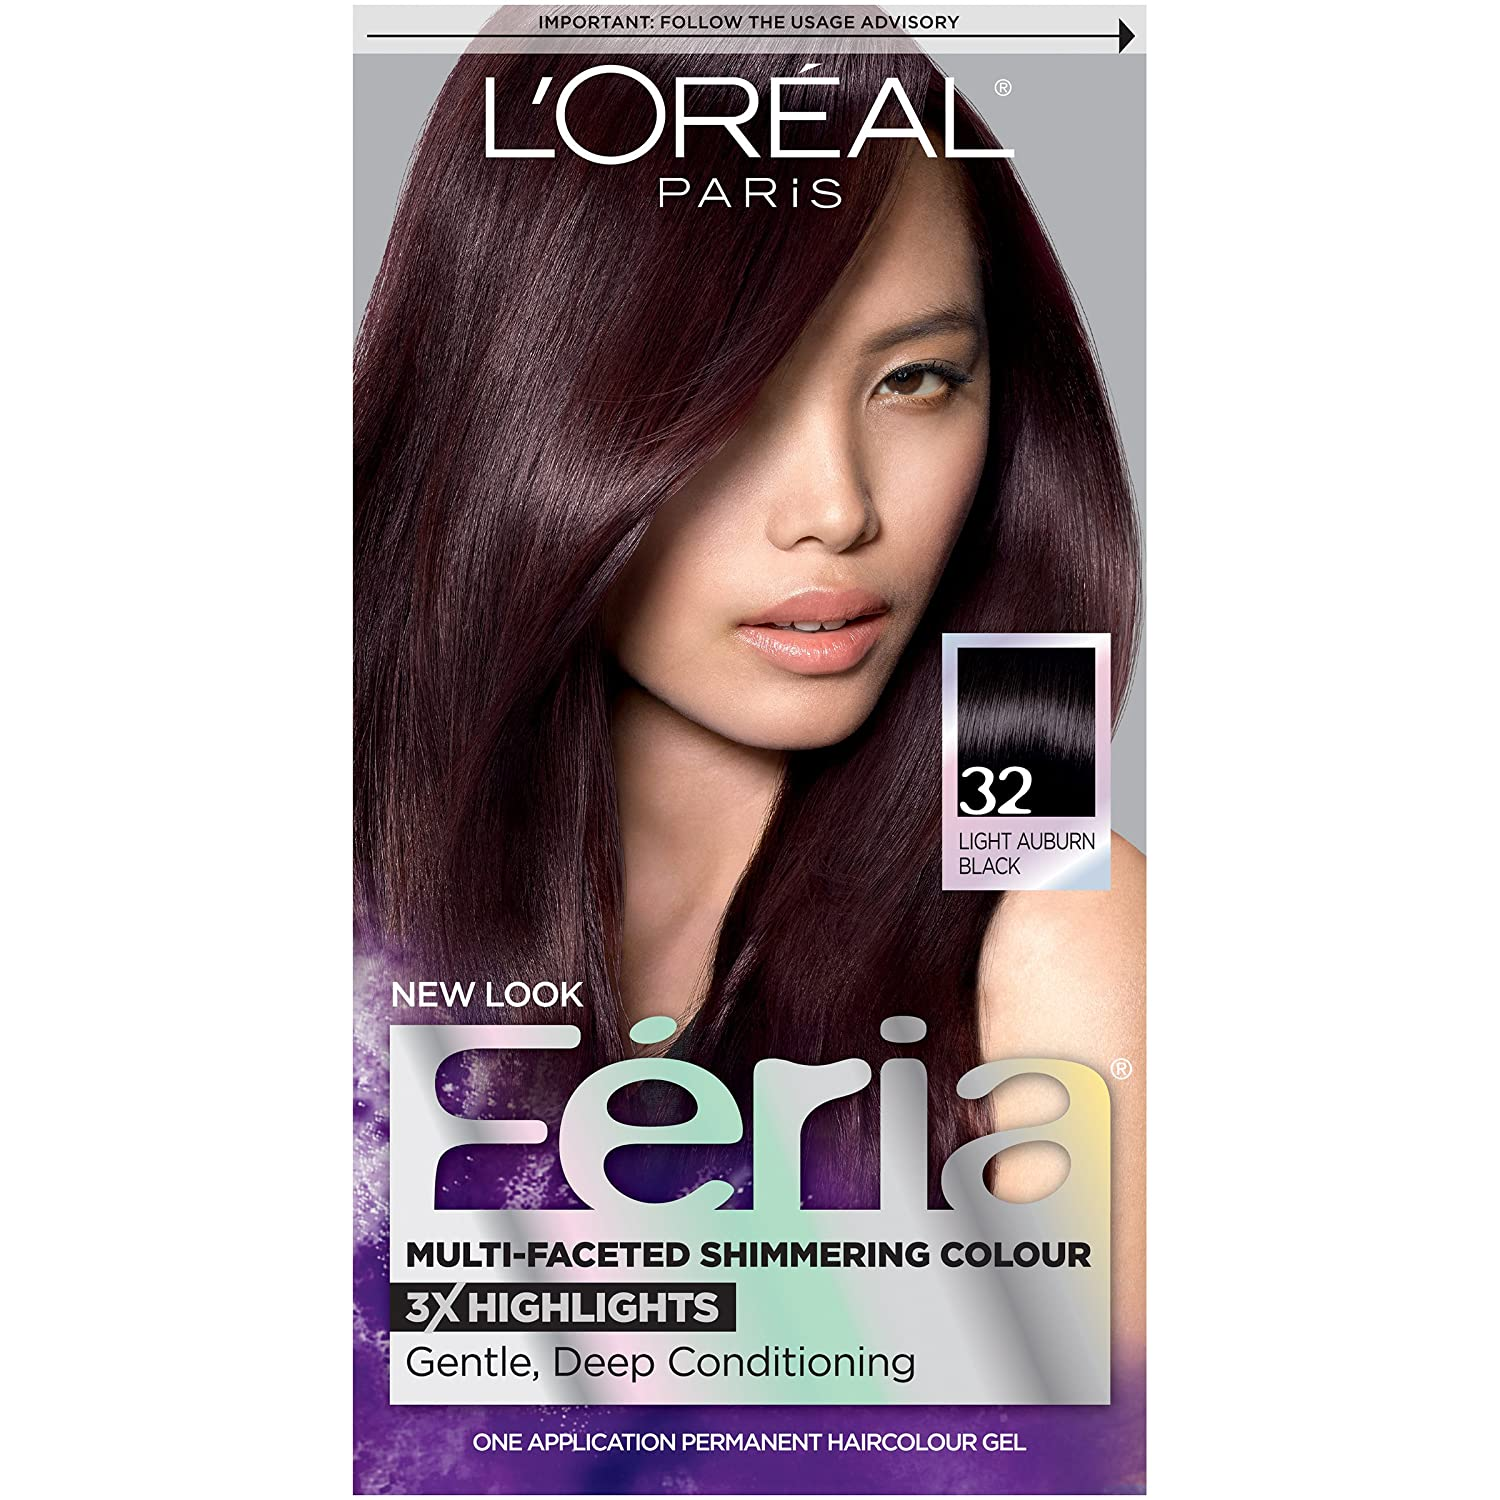 L'Oreal Paris Feria Multi-Faceted Shimmering Color, 32 Midnight Ruby (Light Auburn Black)